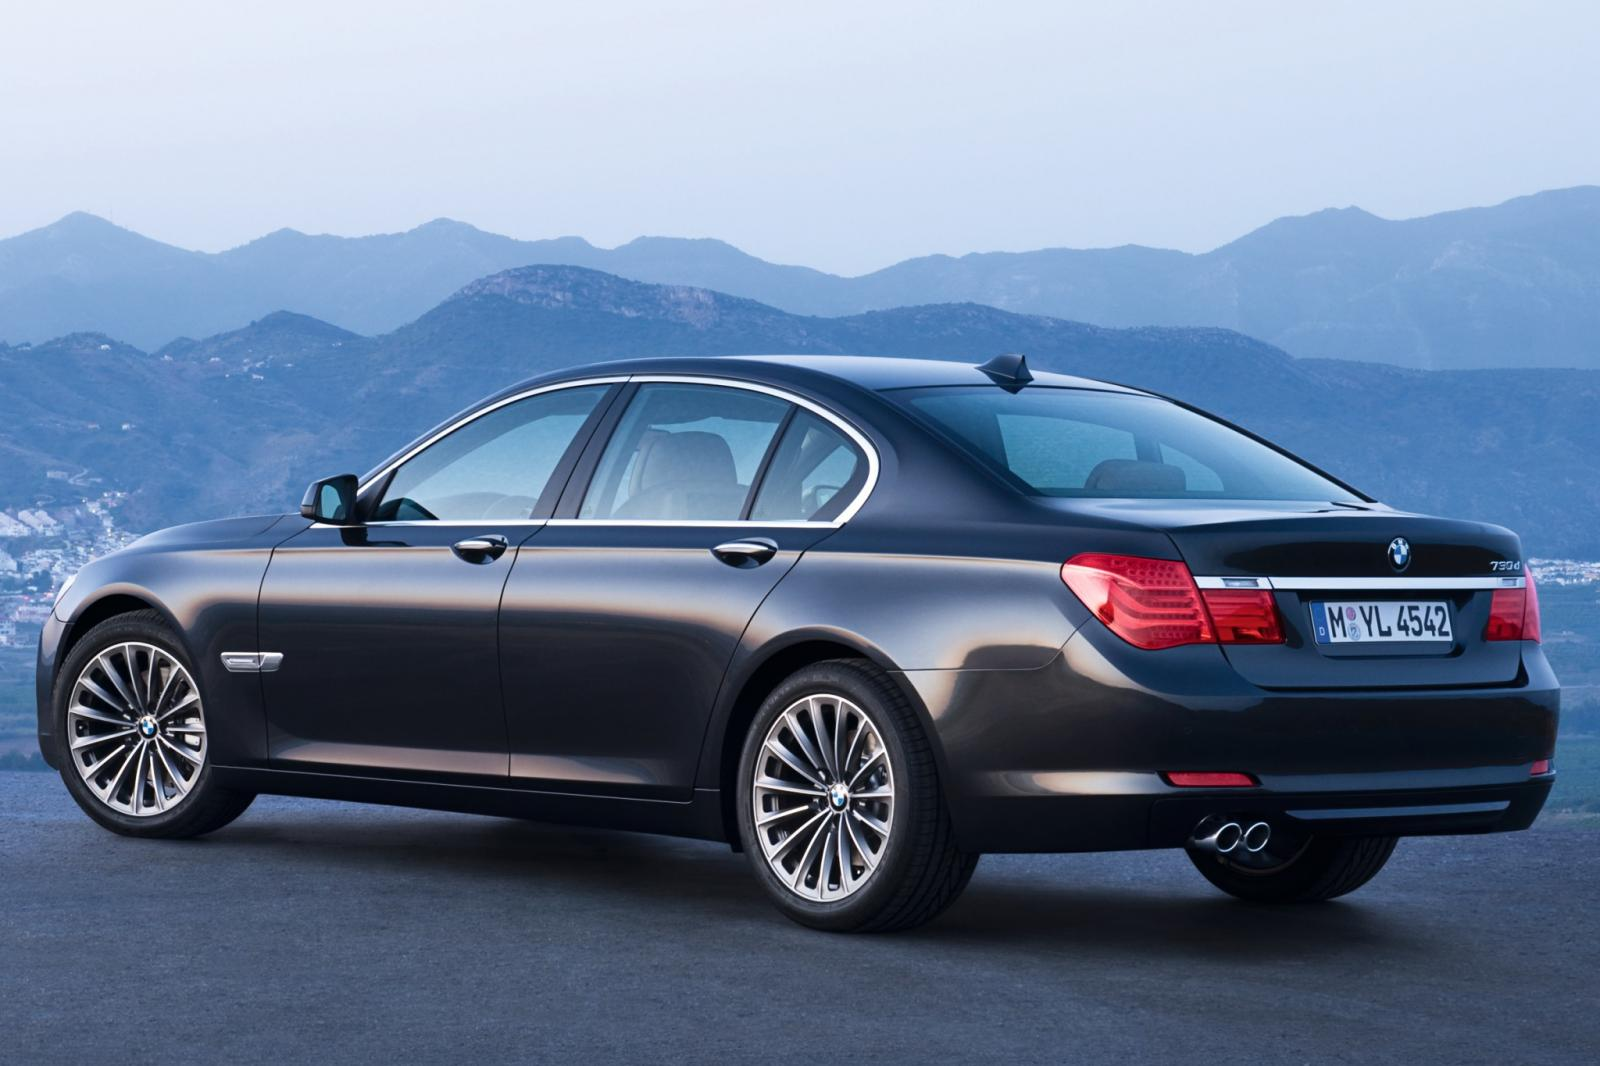 2010 Bmw 7 Series Information And Photos Zombiedrive